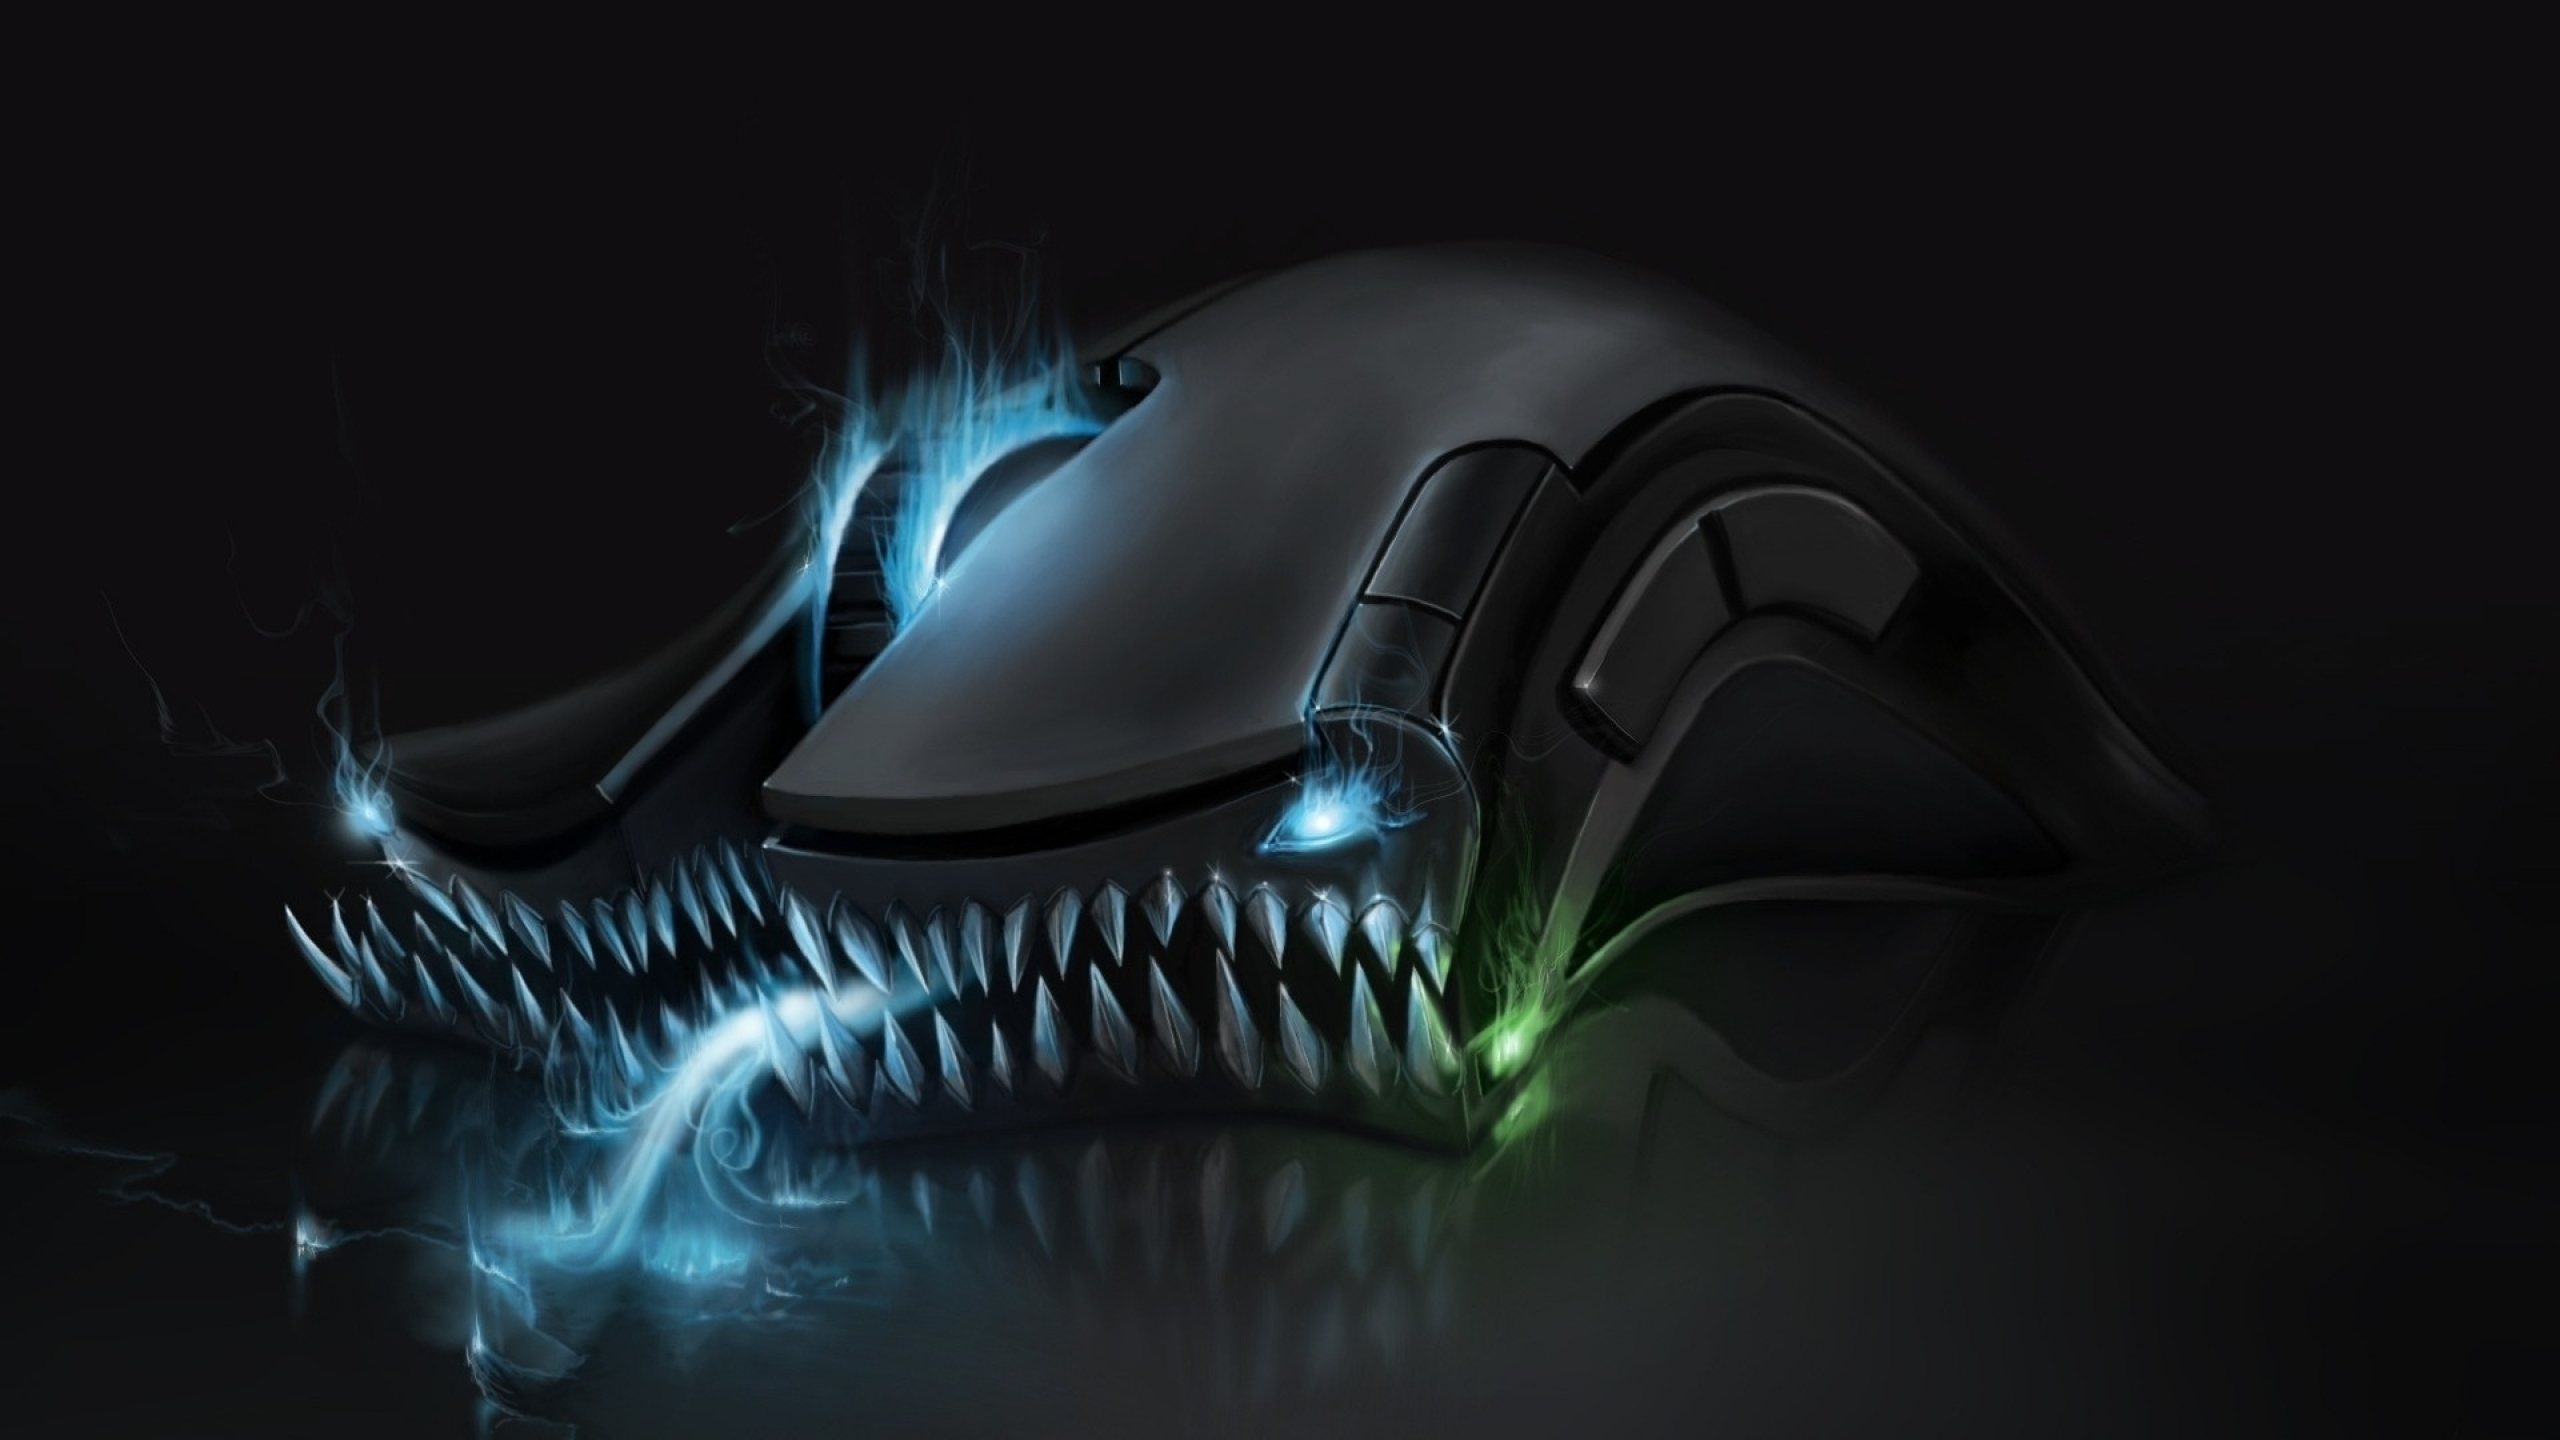 Download Wallpapers Download 2560x1440 computers mouse razer gaming 2560x1440